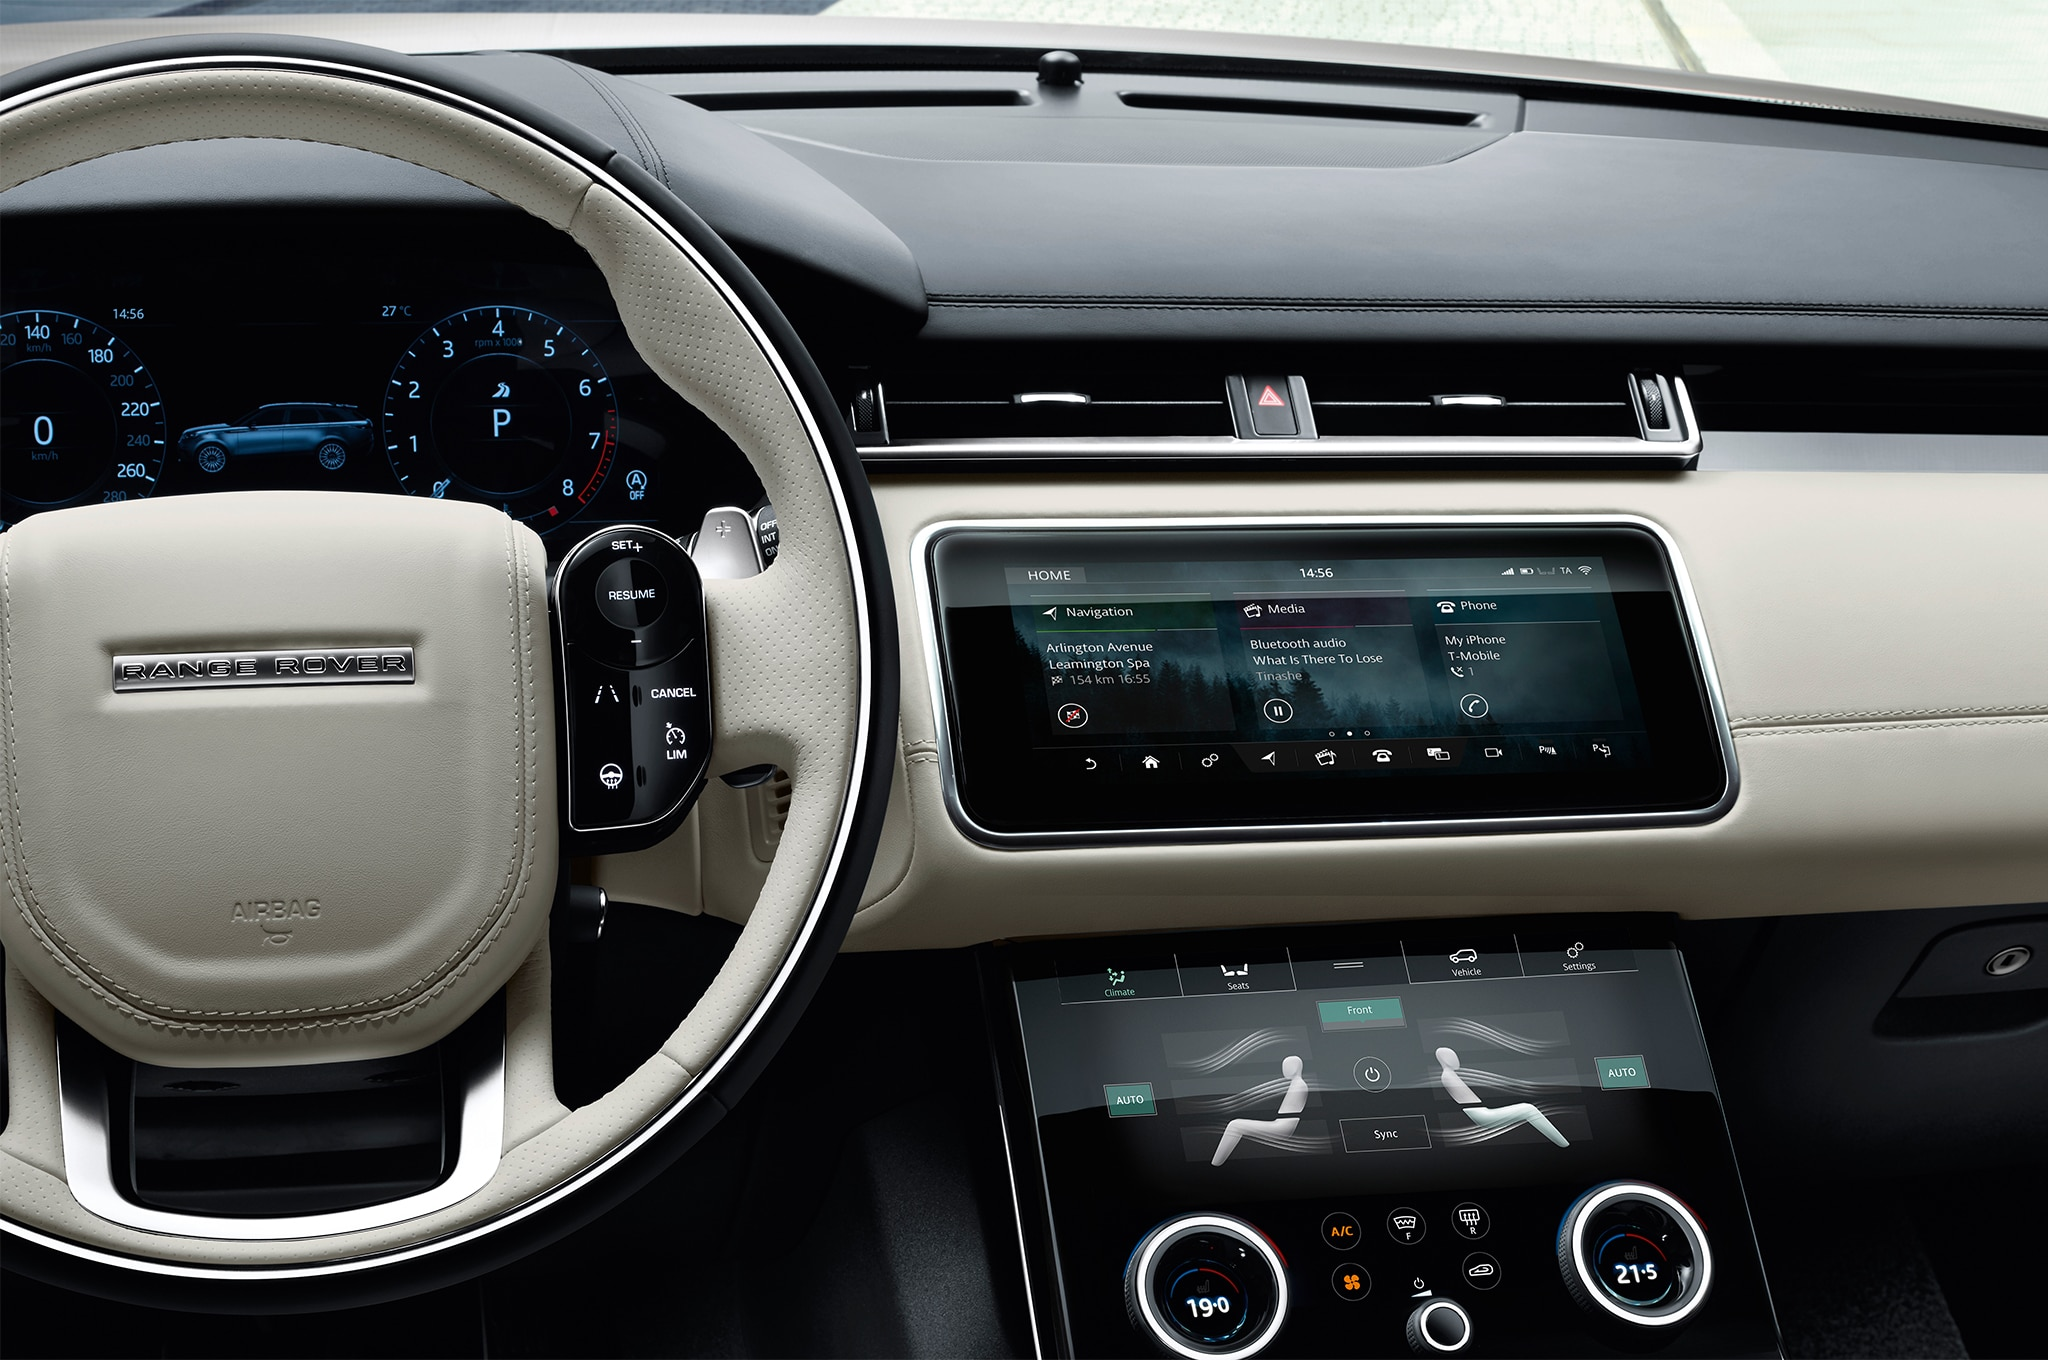 2018 Land Rover Range Rover Velar Interior Center Stack 1